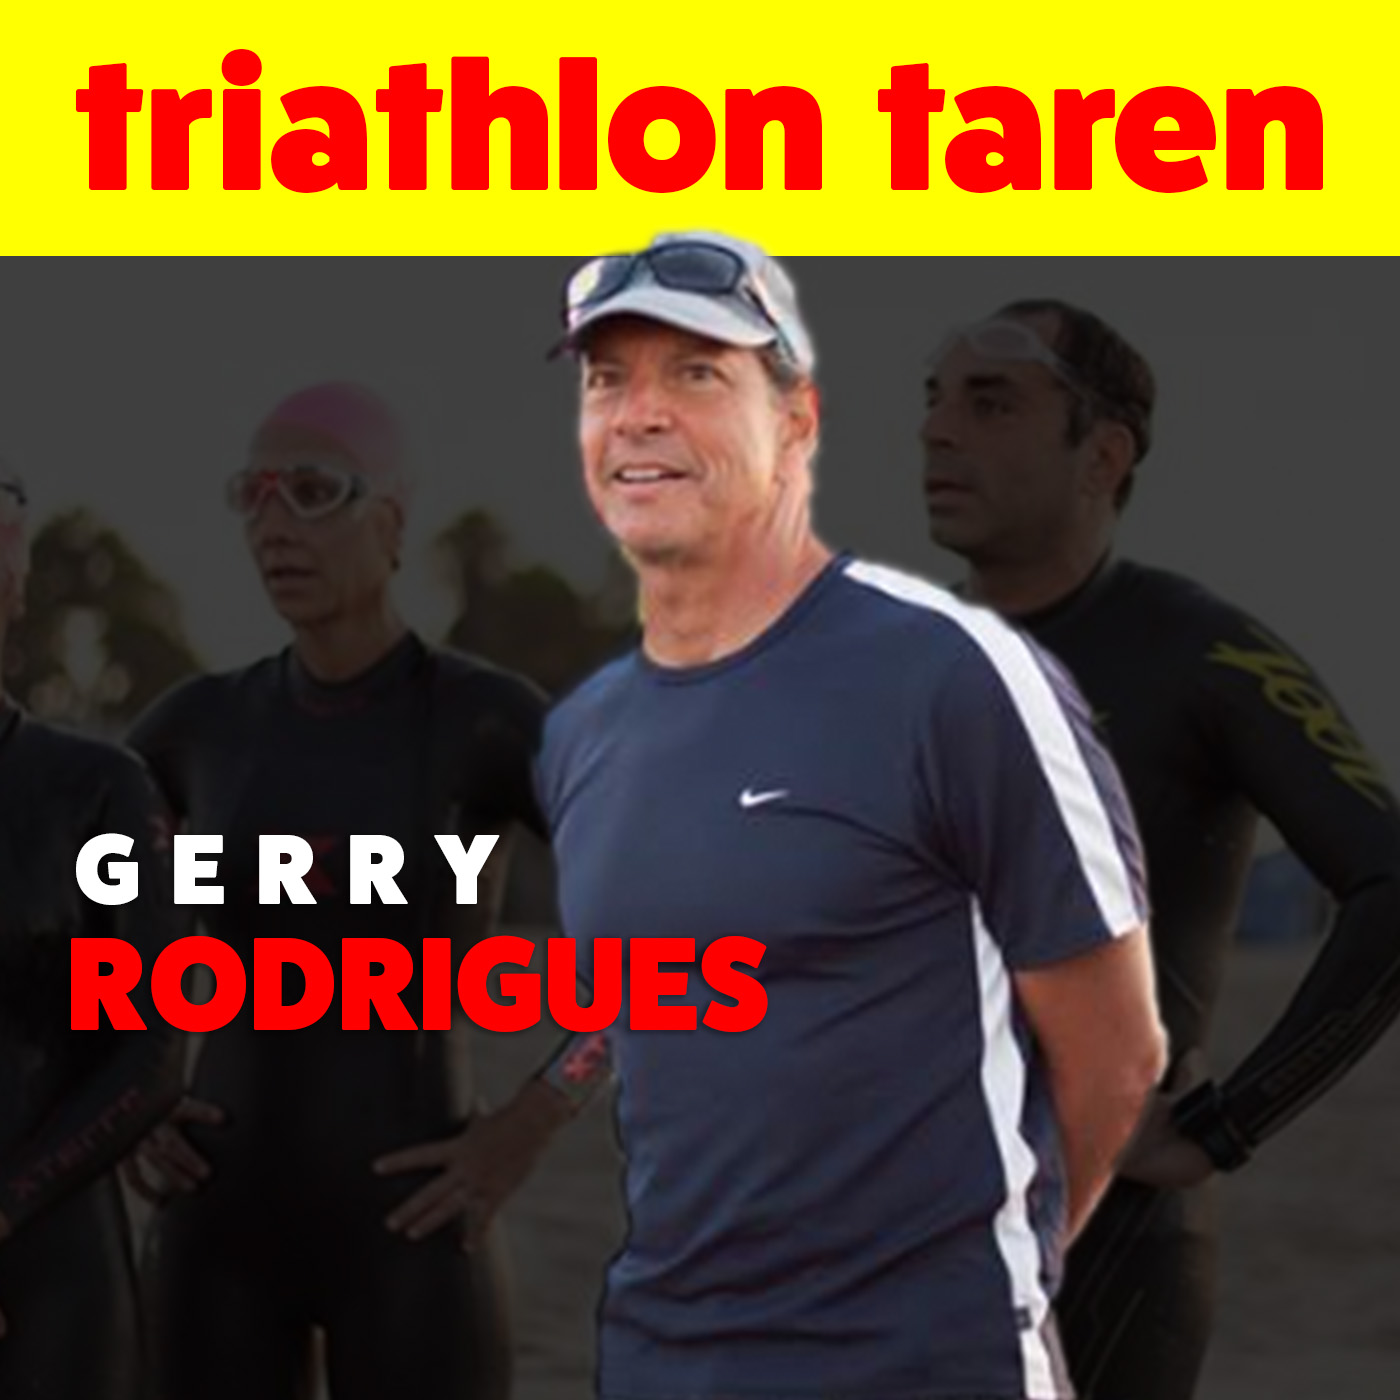 Gerry Rodrigues: Is He The Best Triathlon Swim Coach In The World?